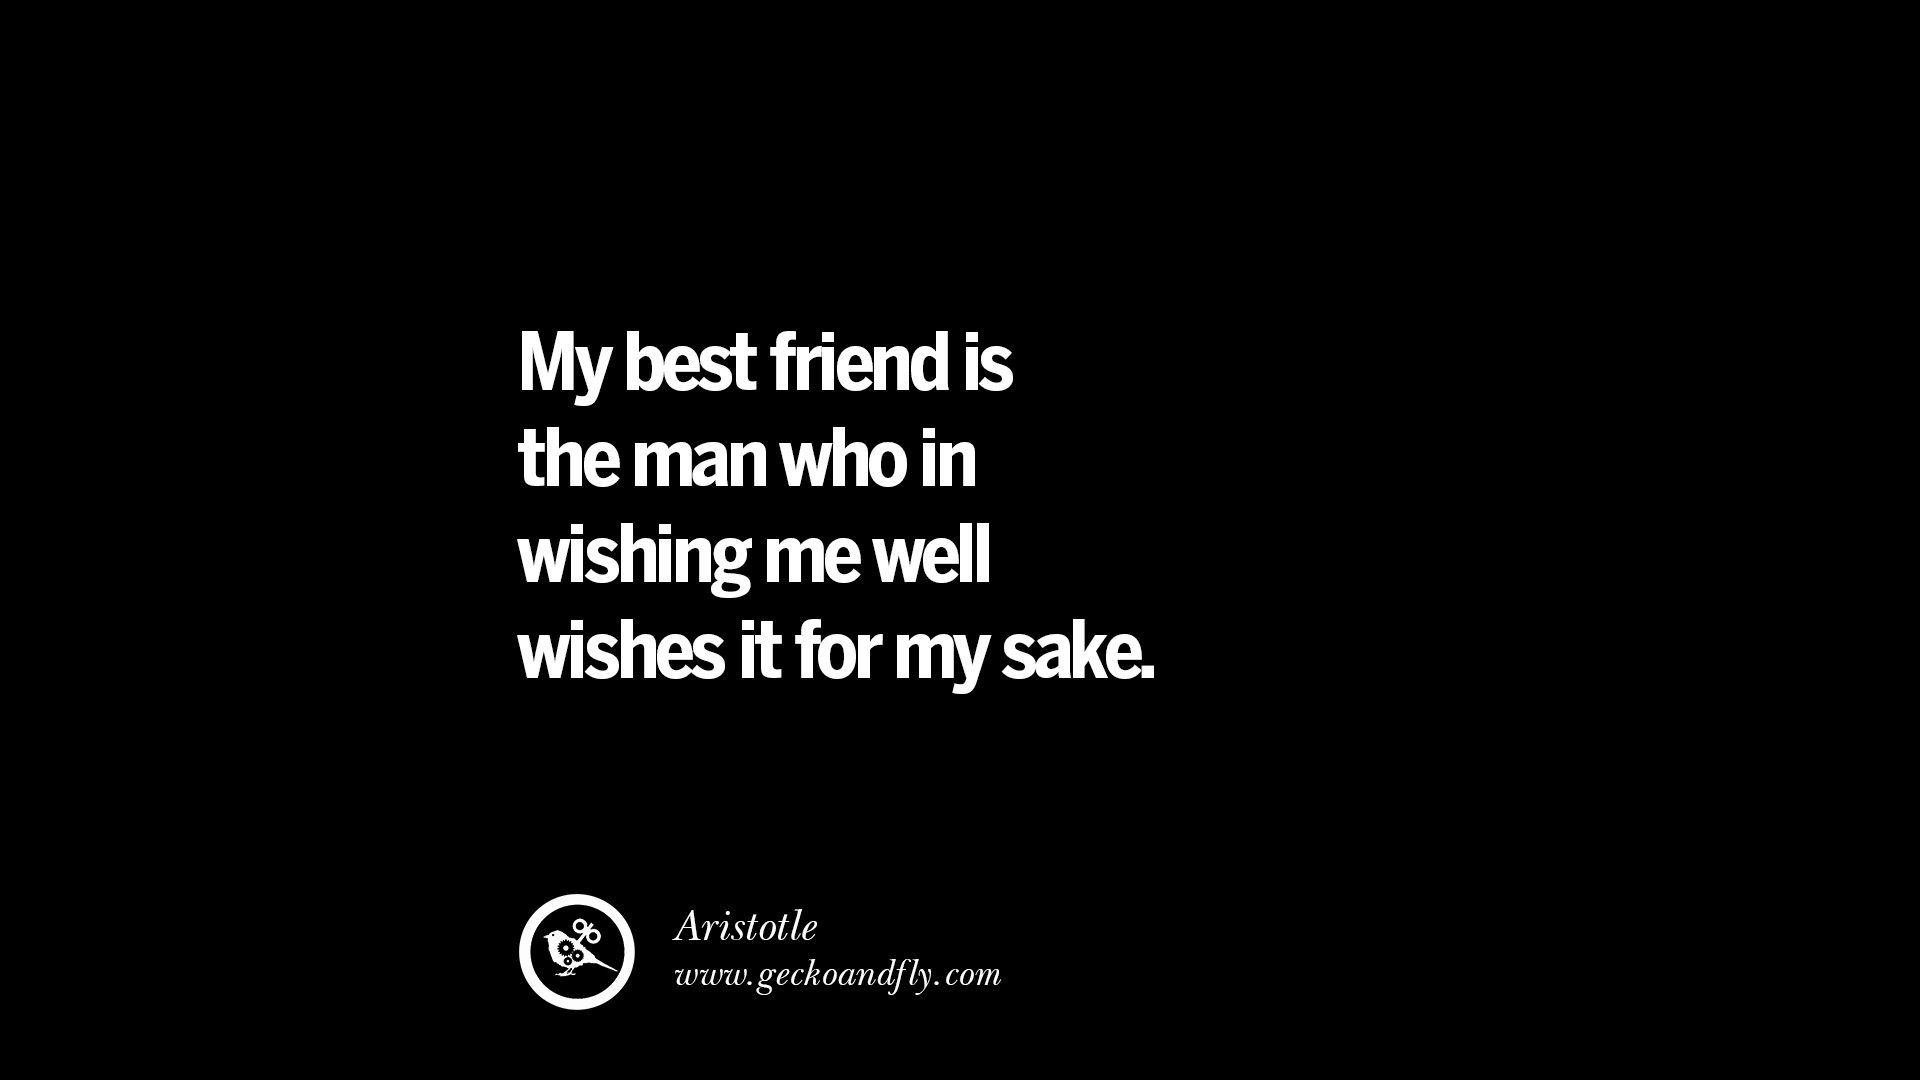 Funny Quotes About Friendship And Love 20 Amazing Quotes About Friendship Love And Friends  Geckoandfly 2018